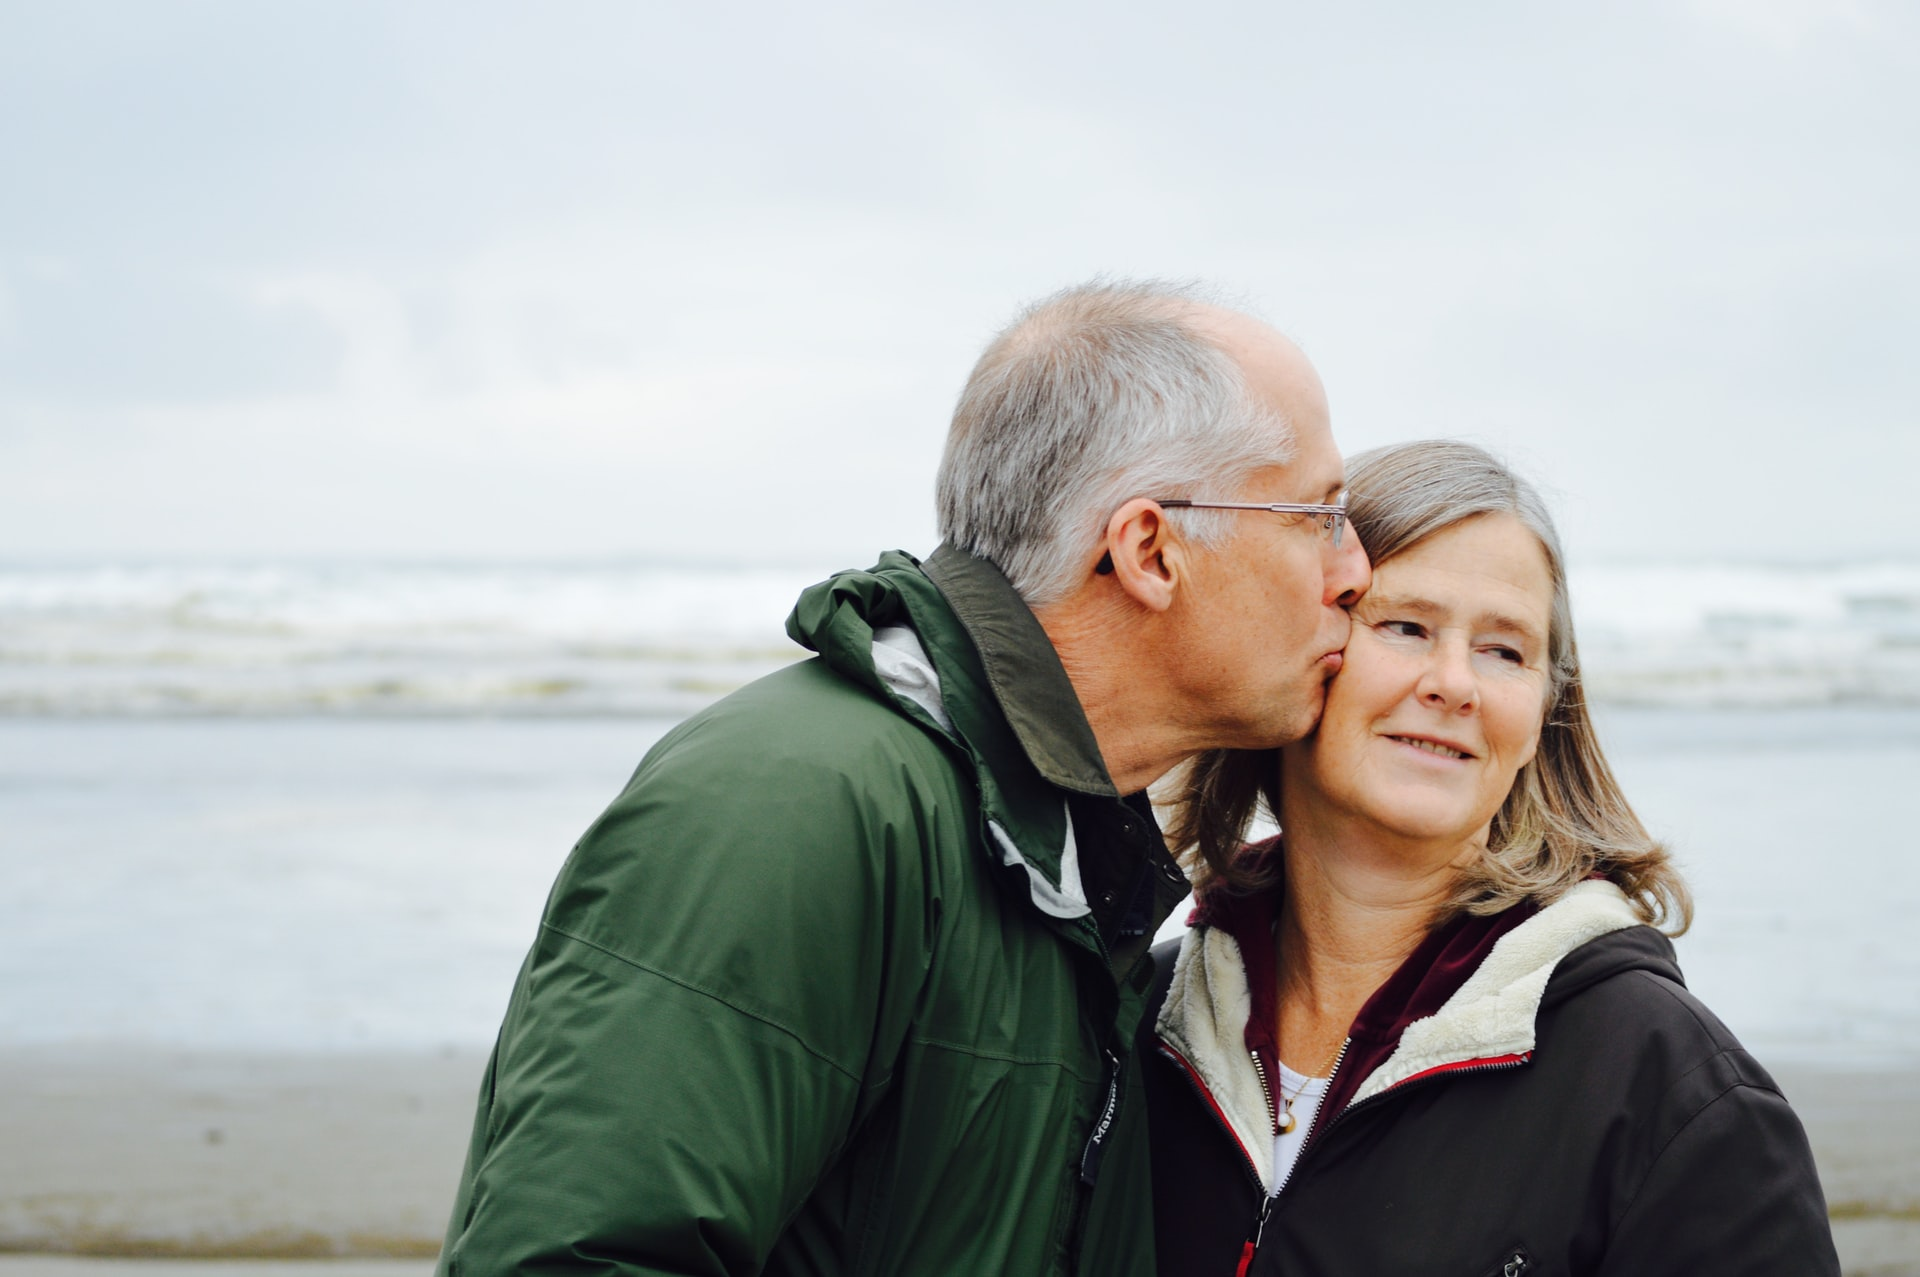 Tips for Seniors: How to Adapt Relationship and Dating in a Rapidly Changing Technological World